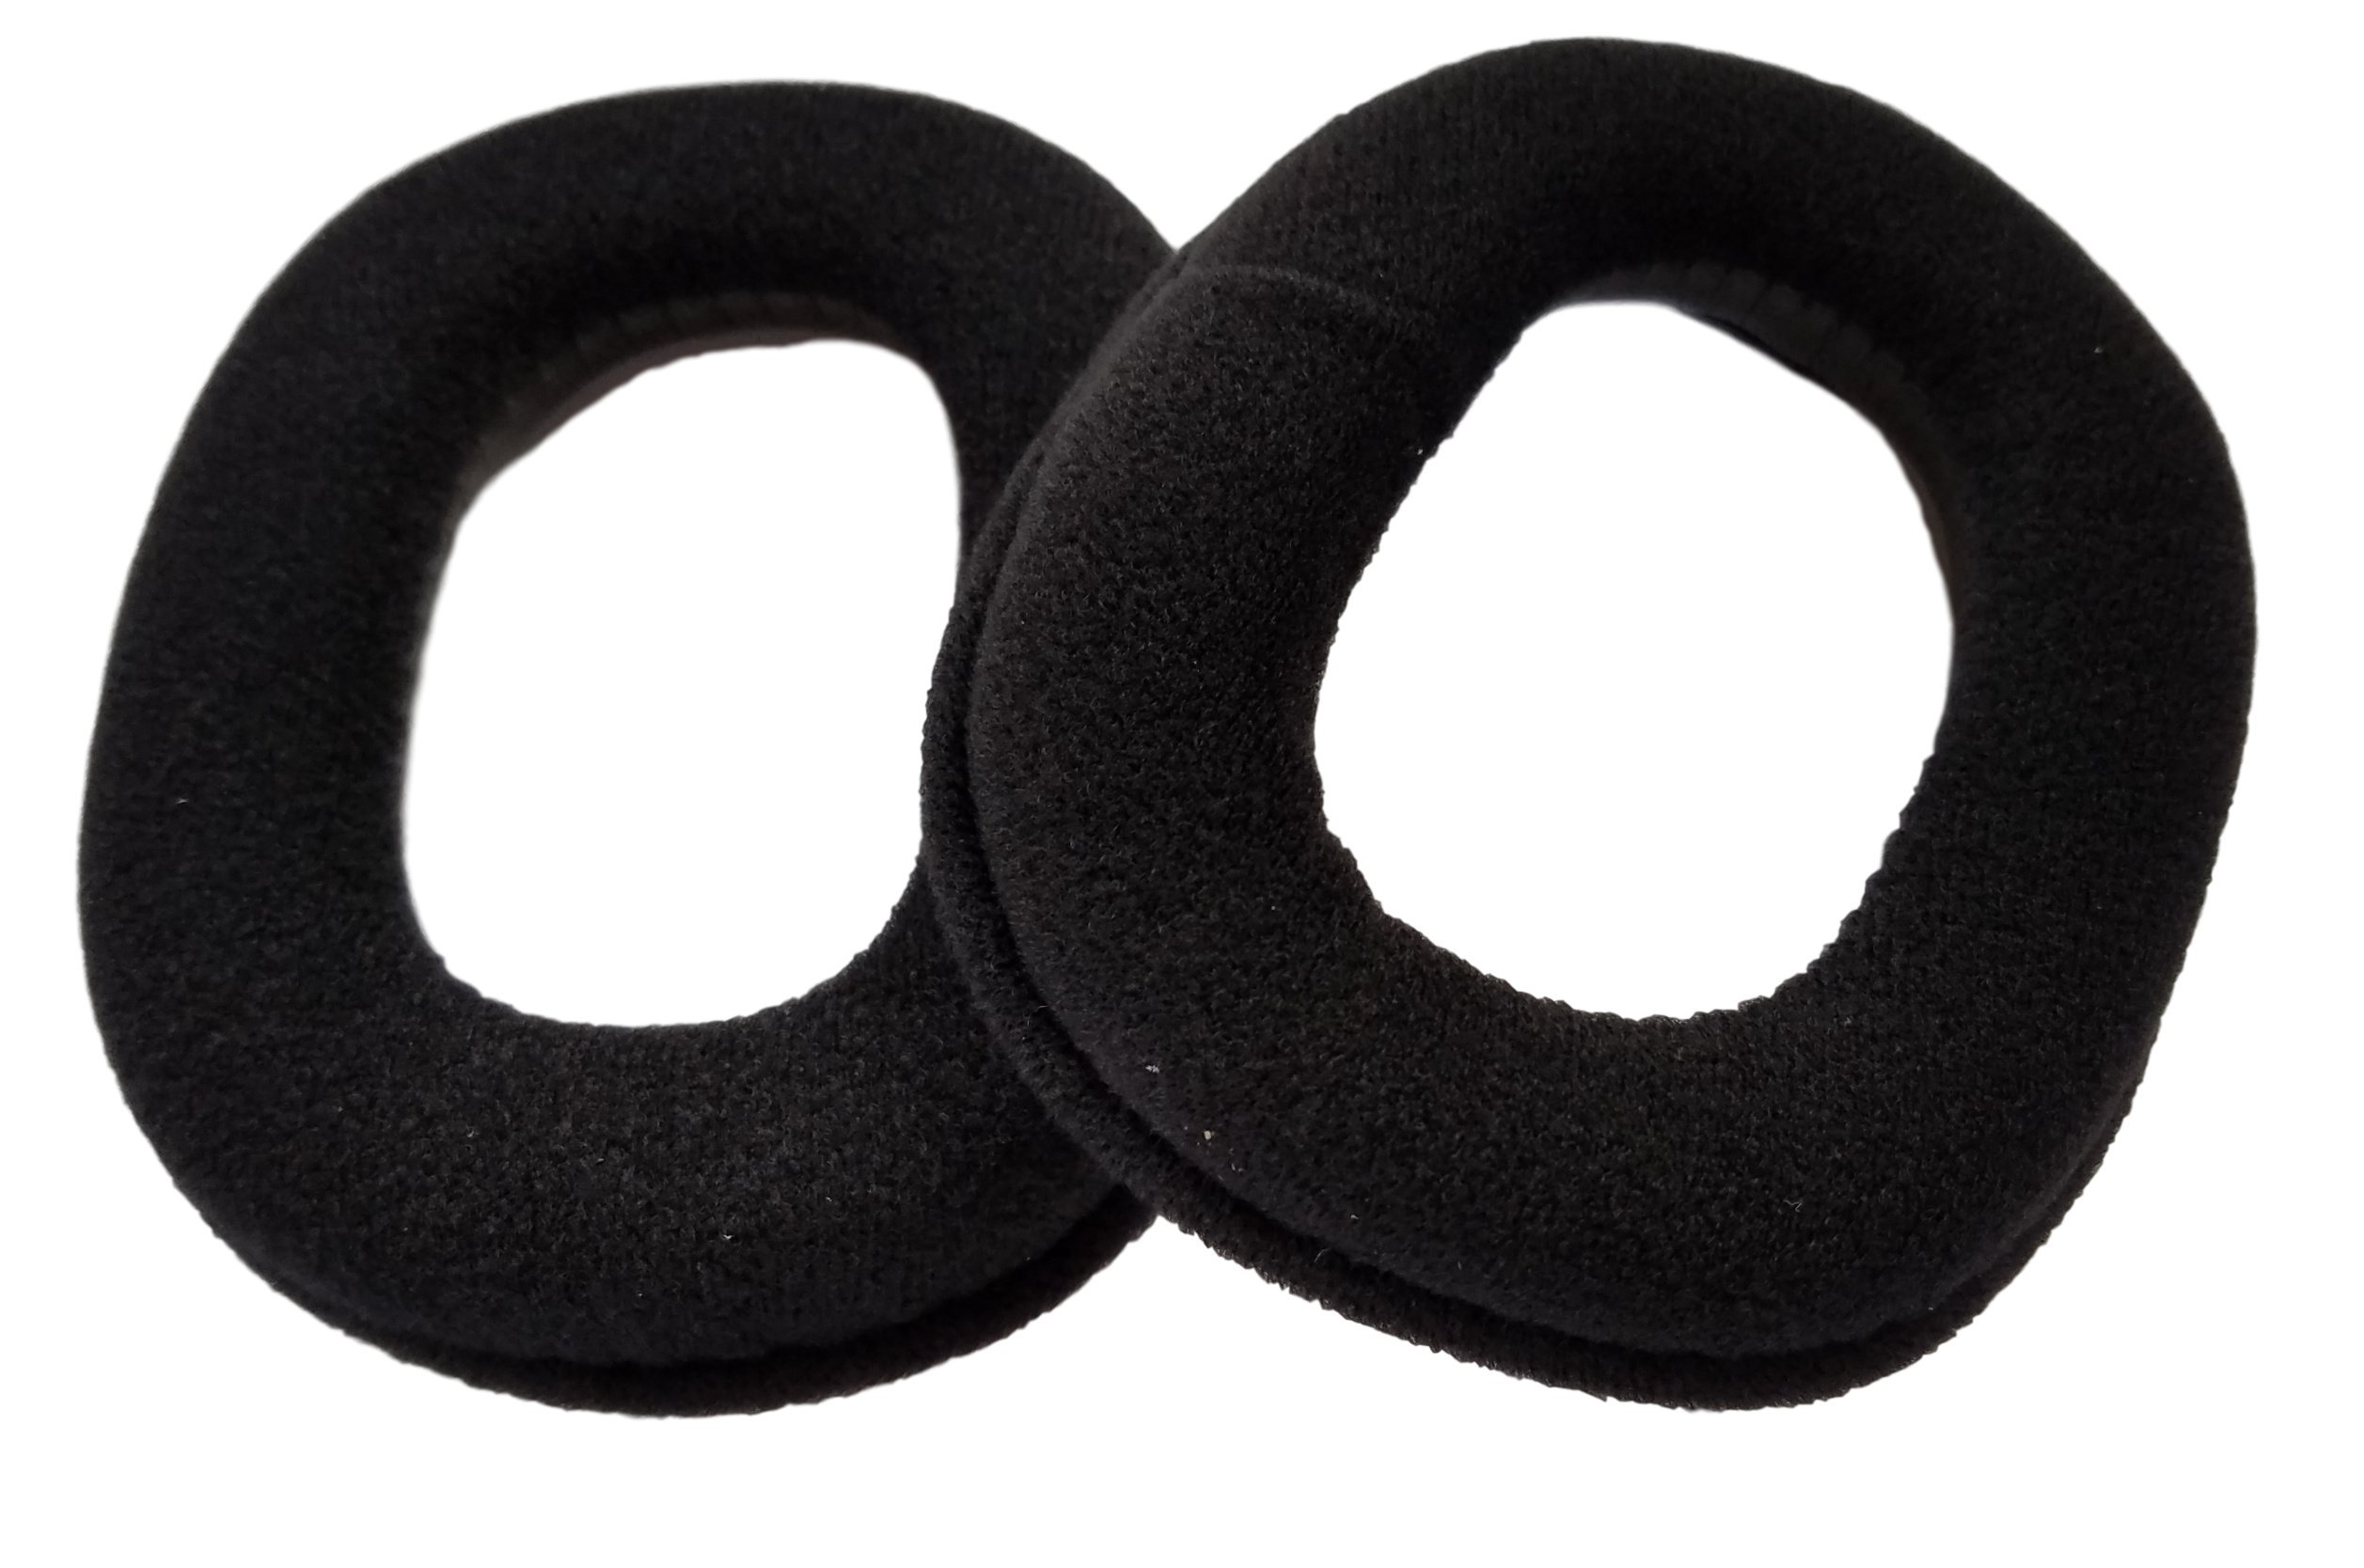 Replacement Ear Pads / Ear Cushions (2 Pack / 1 Pair) for Astro A40 Gaming Headset by ienza®